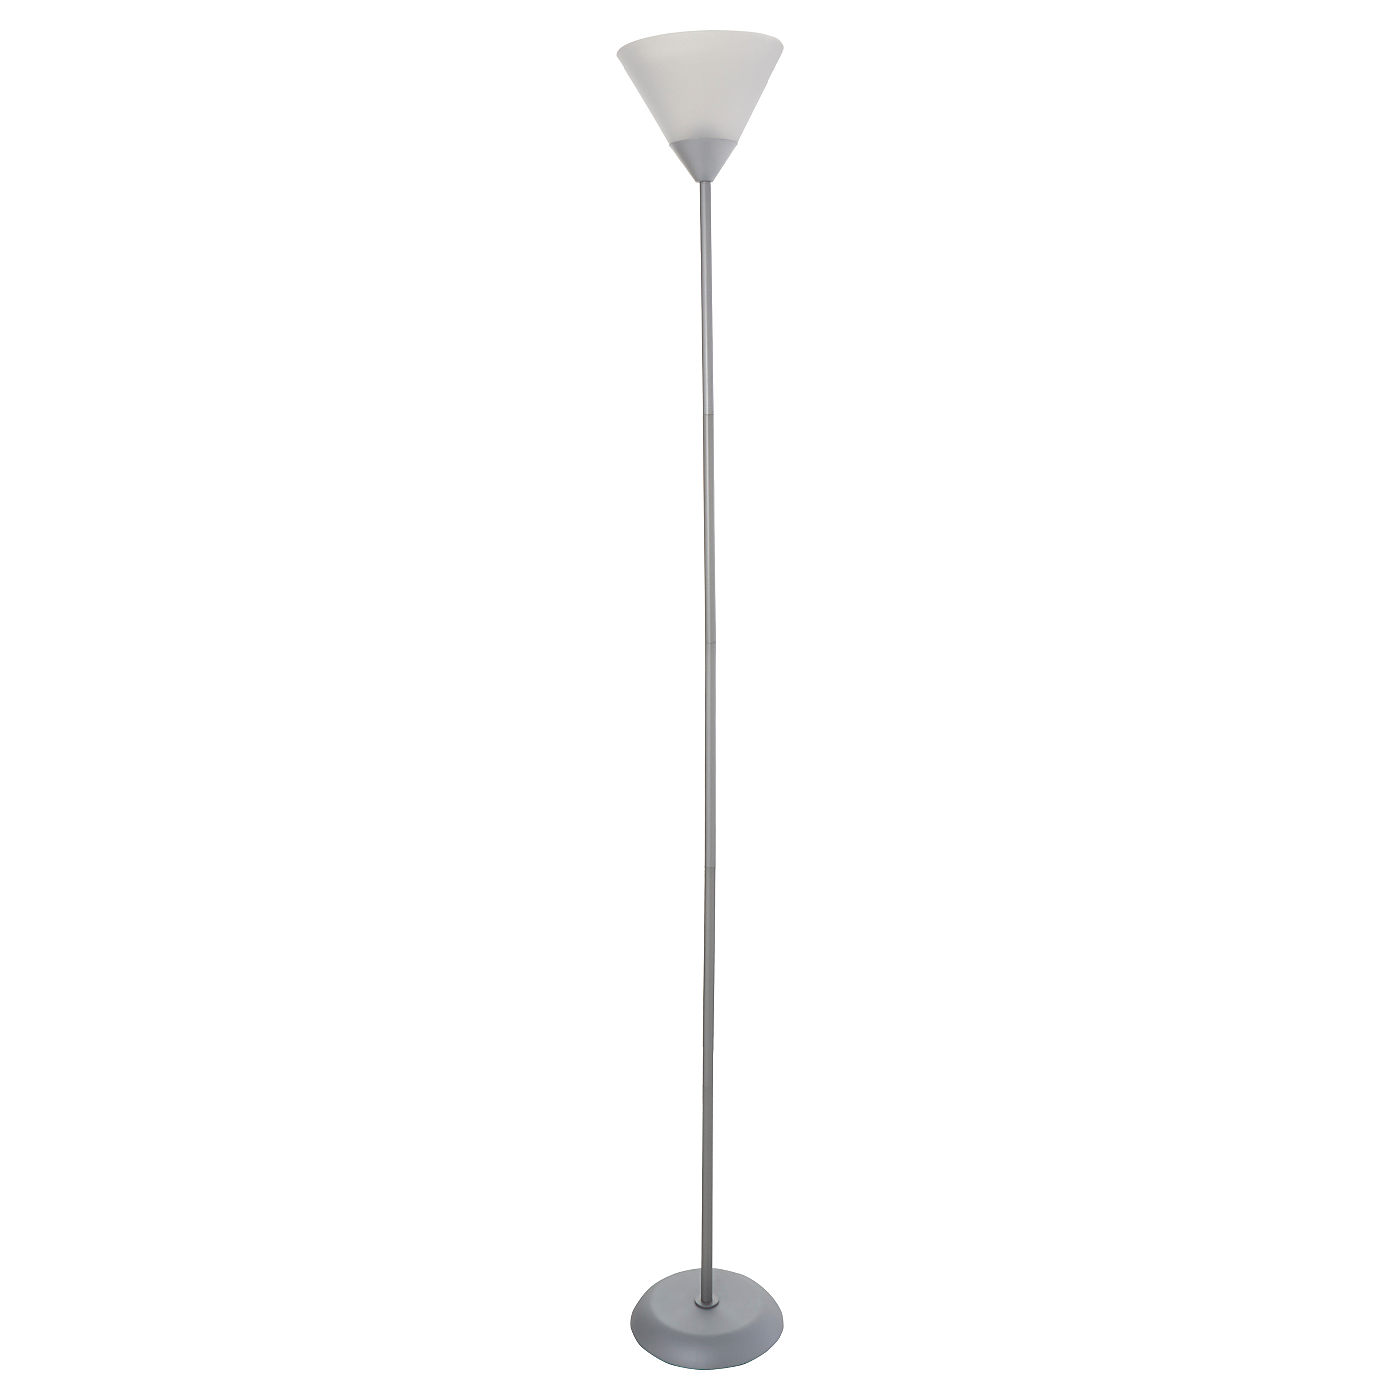 Floor lamp gbp300 asda instore hotukdeals for Floor lamp asda